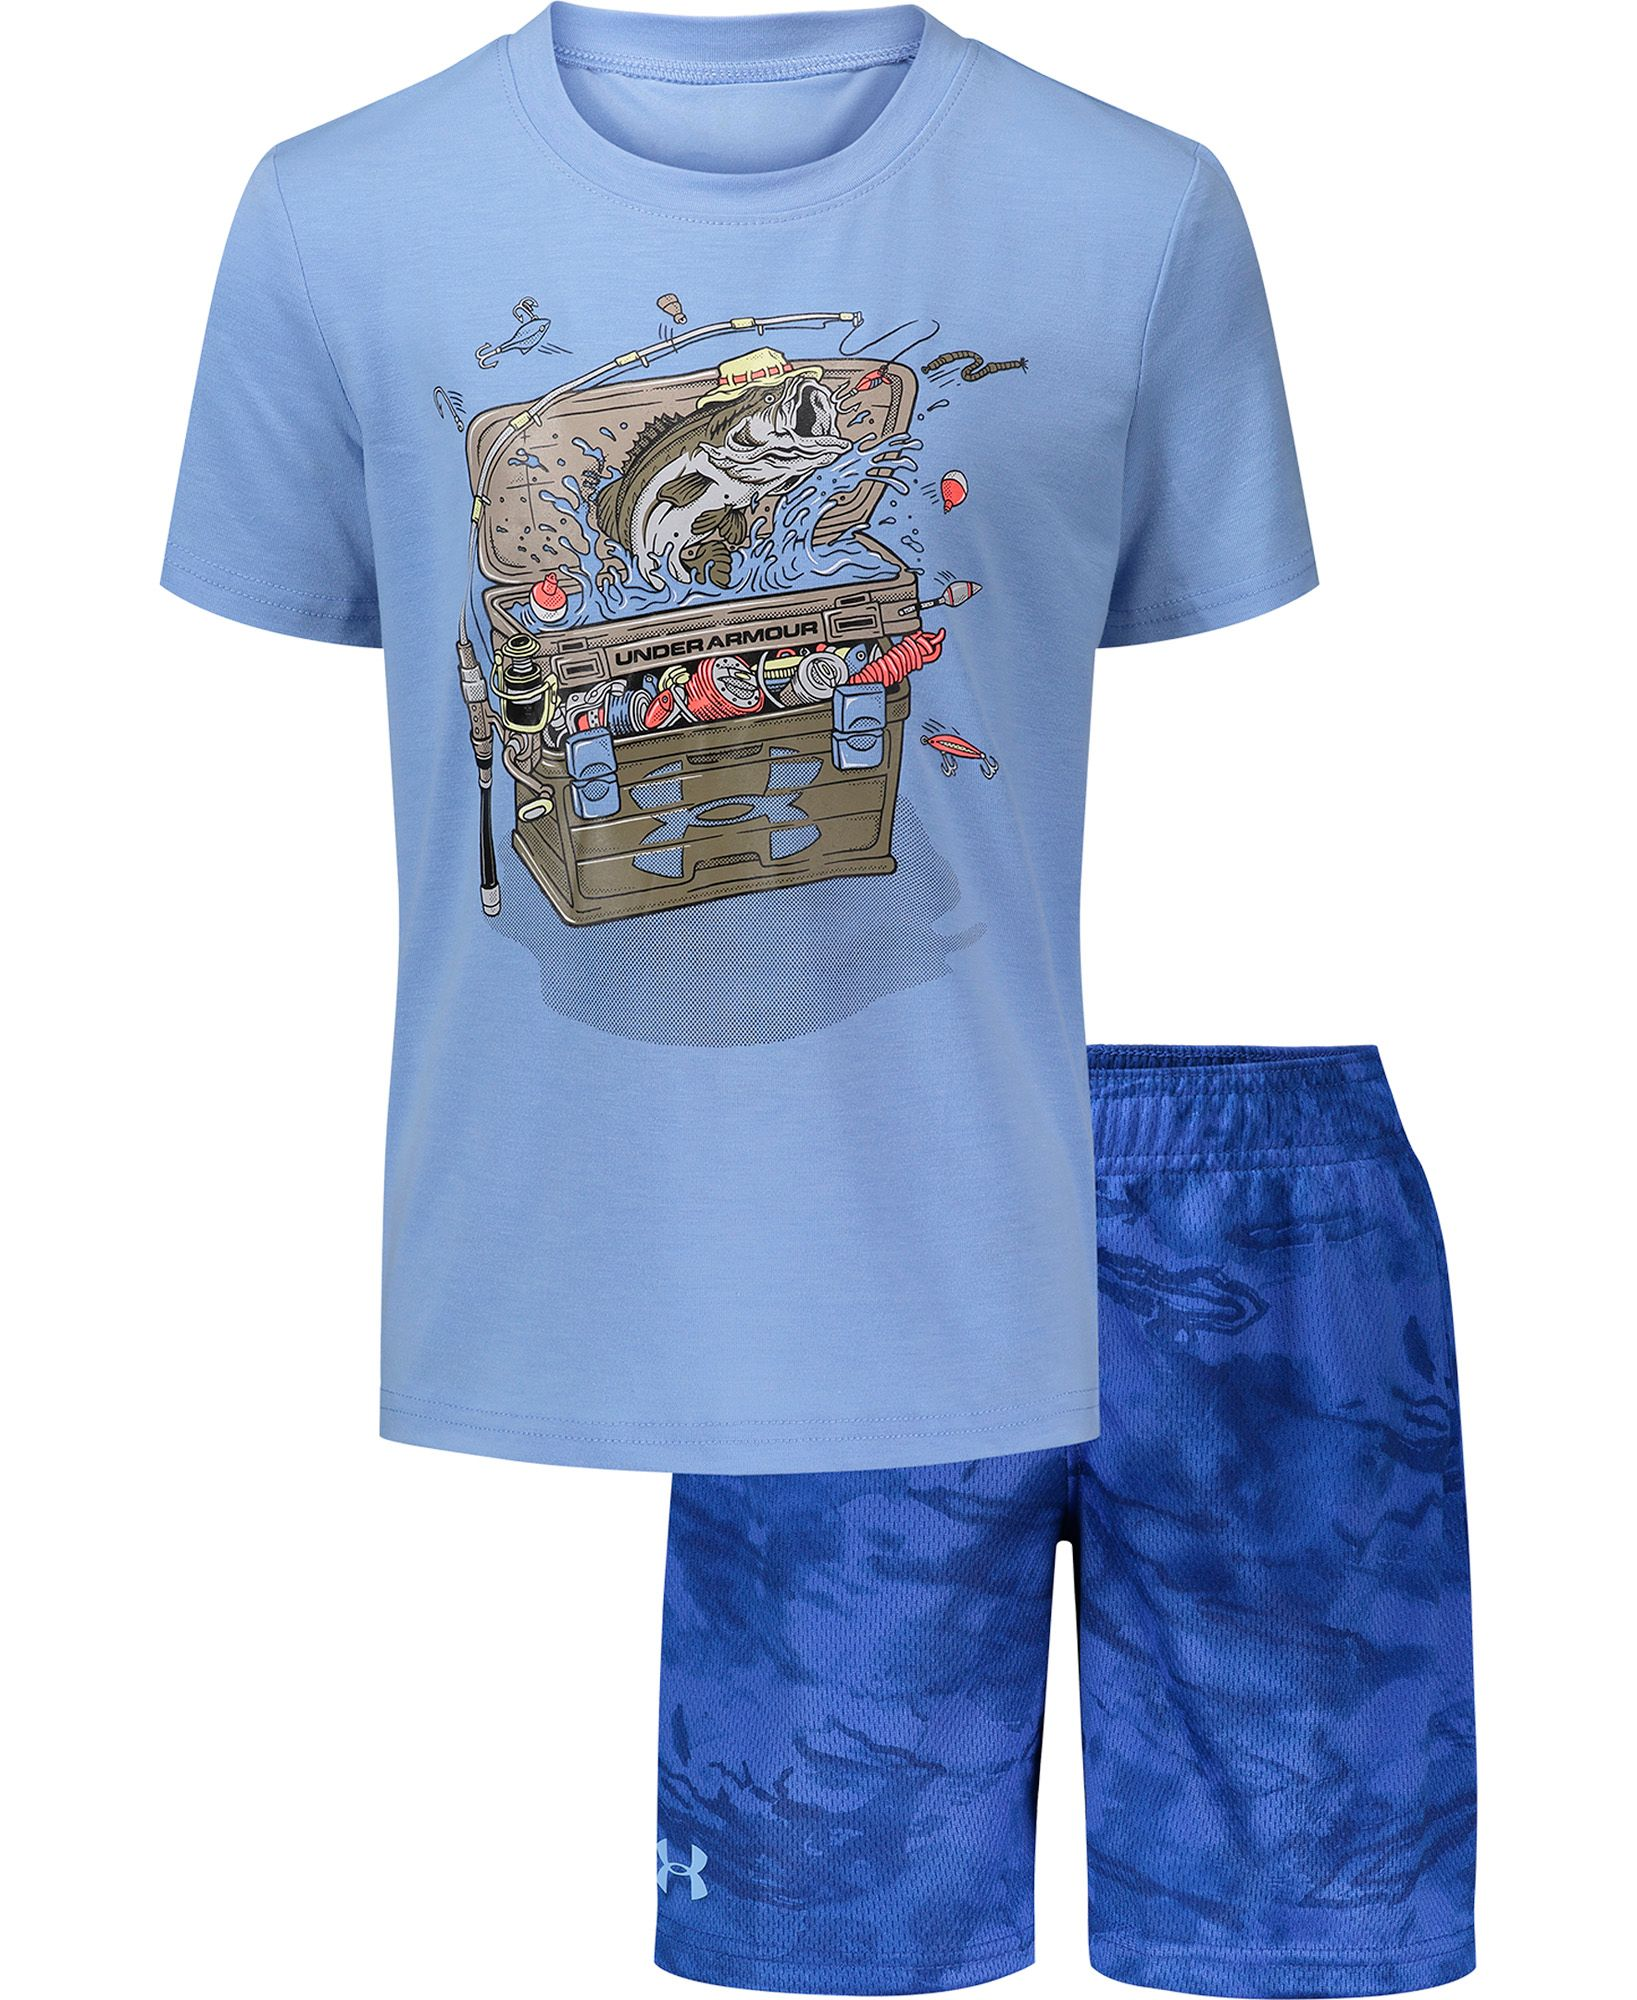 Under Armour Boys' Tackle Box T-Shirt and Shorts 2-Piece Set, Boy's, Size: 5, Blue